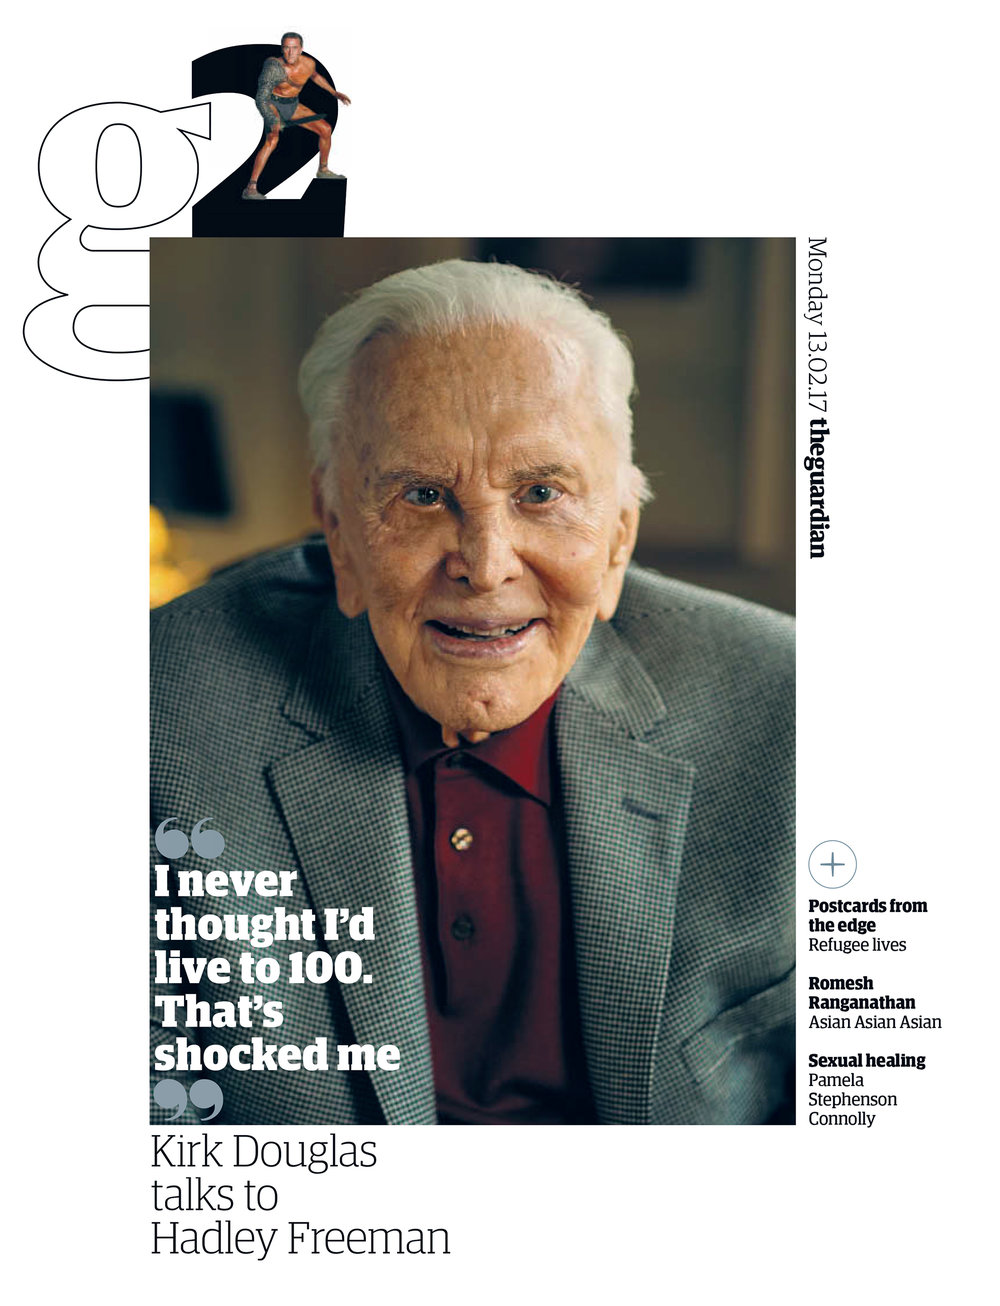 kirk douglas cover low res GDN_20170213_null_G2_01_1.jpg